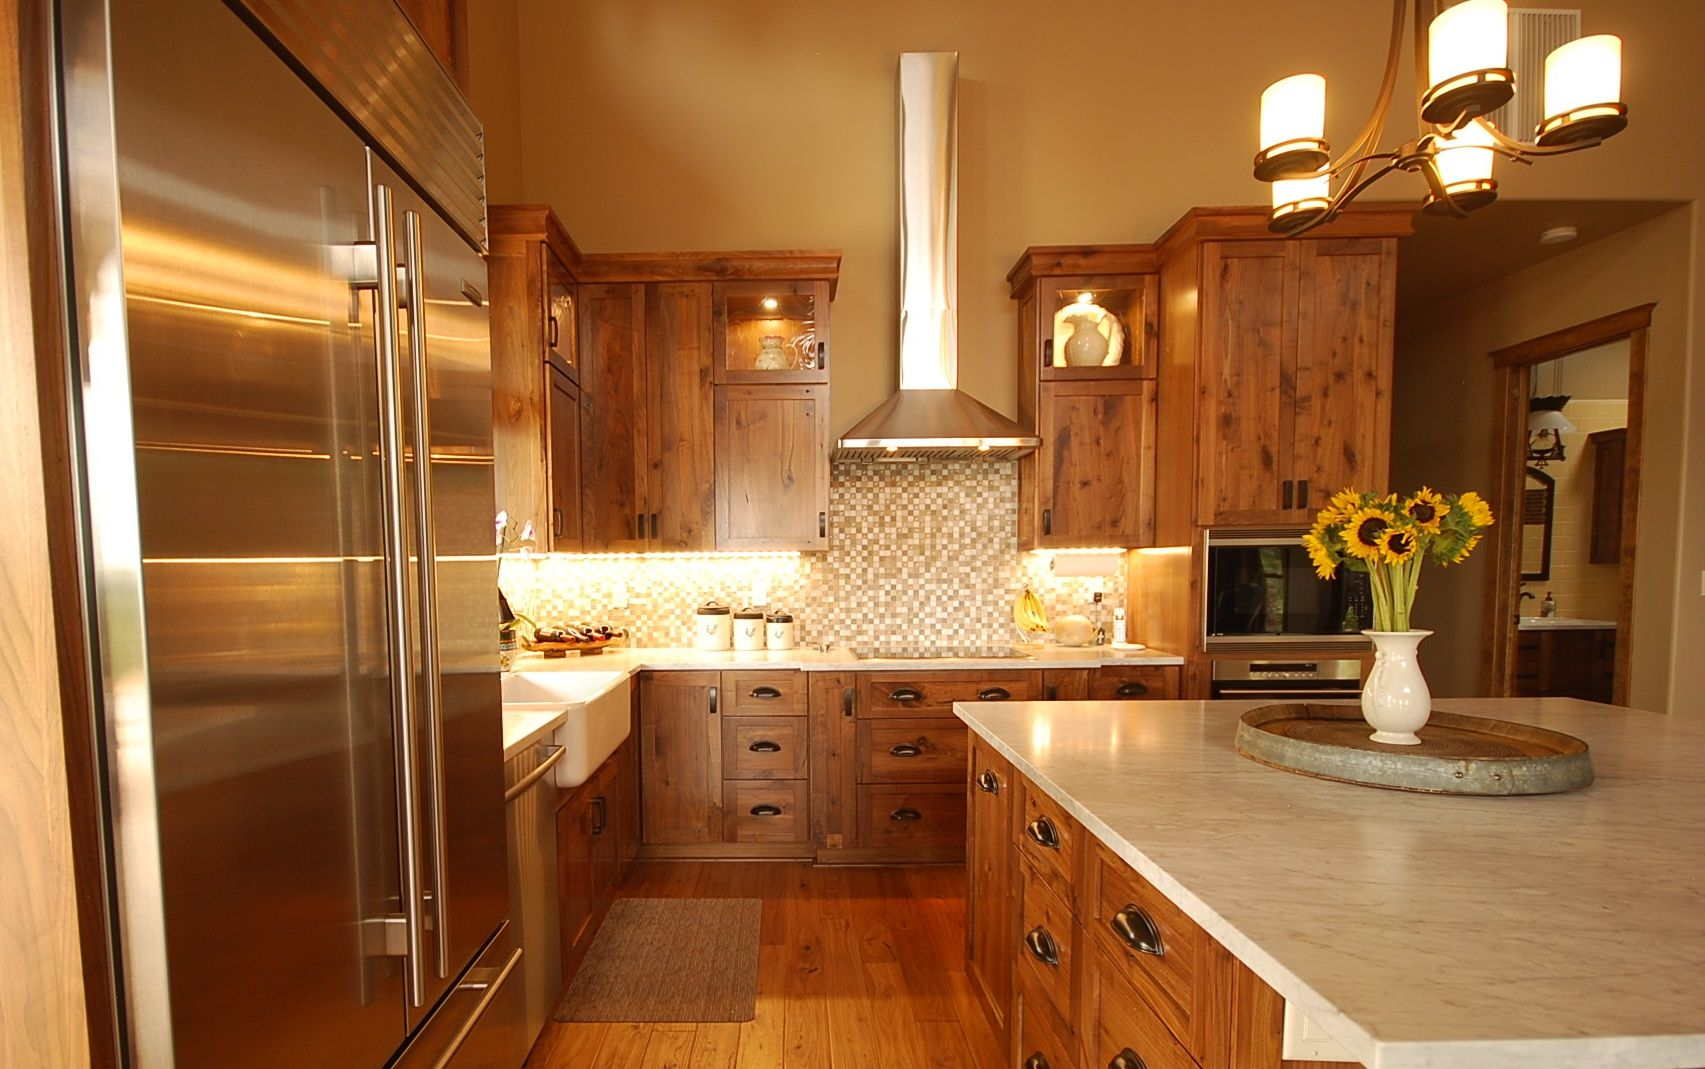 Rustic alder cabinetry, white countertop, stainless steel appliances ...